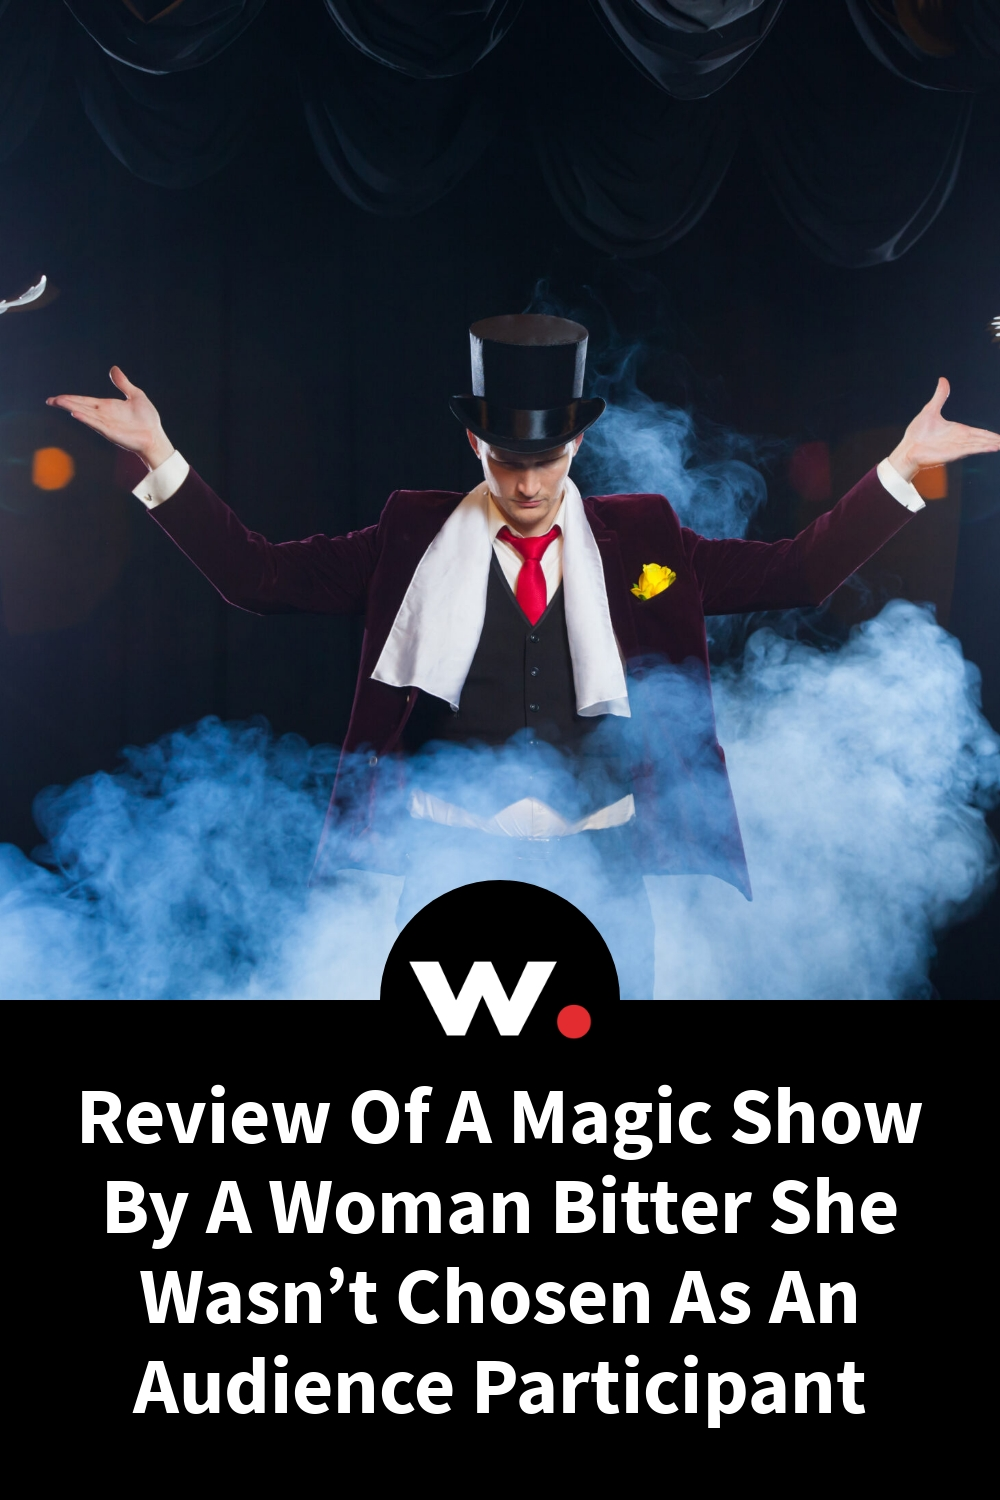 Review Of A Magic Show By A Woman Bitter She Wasn't Chosen As An Audience Participant